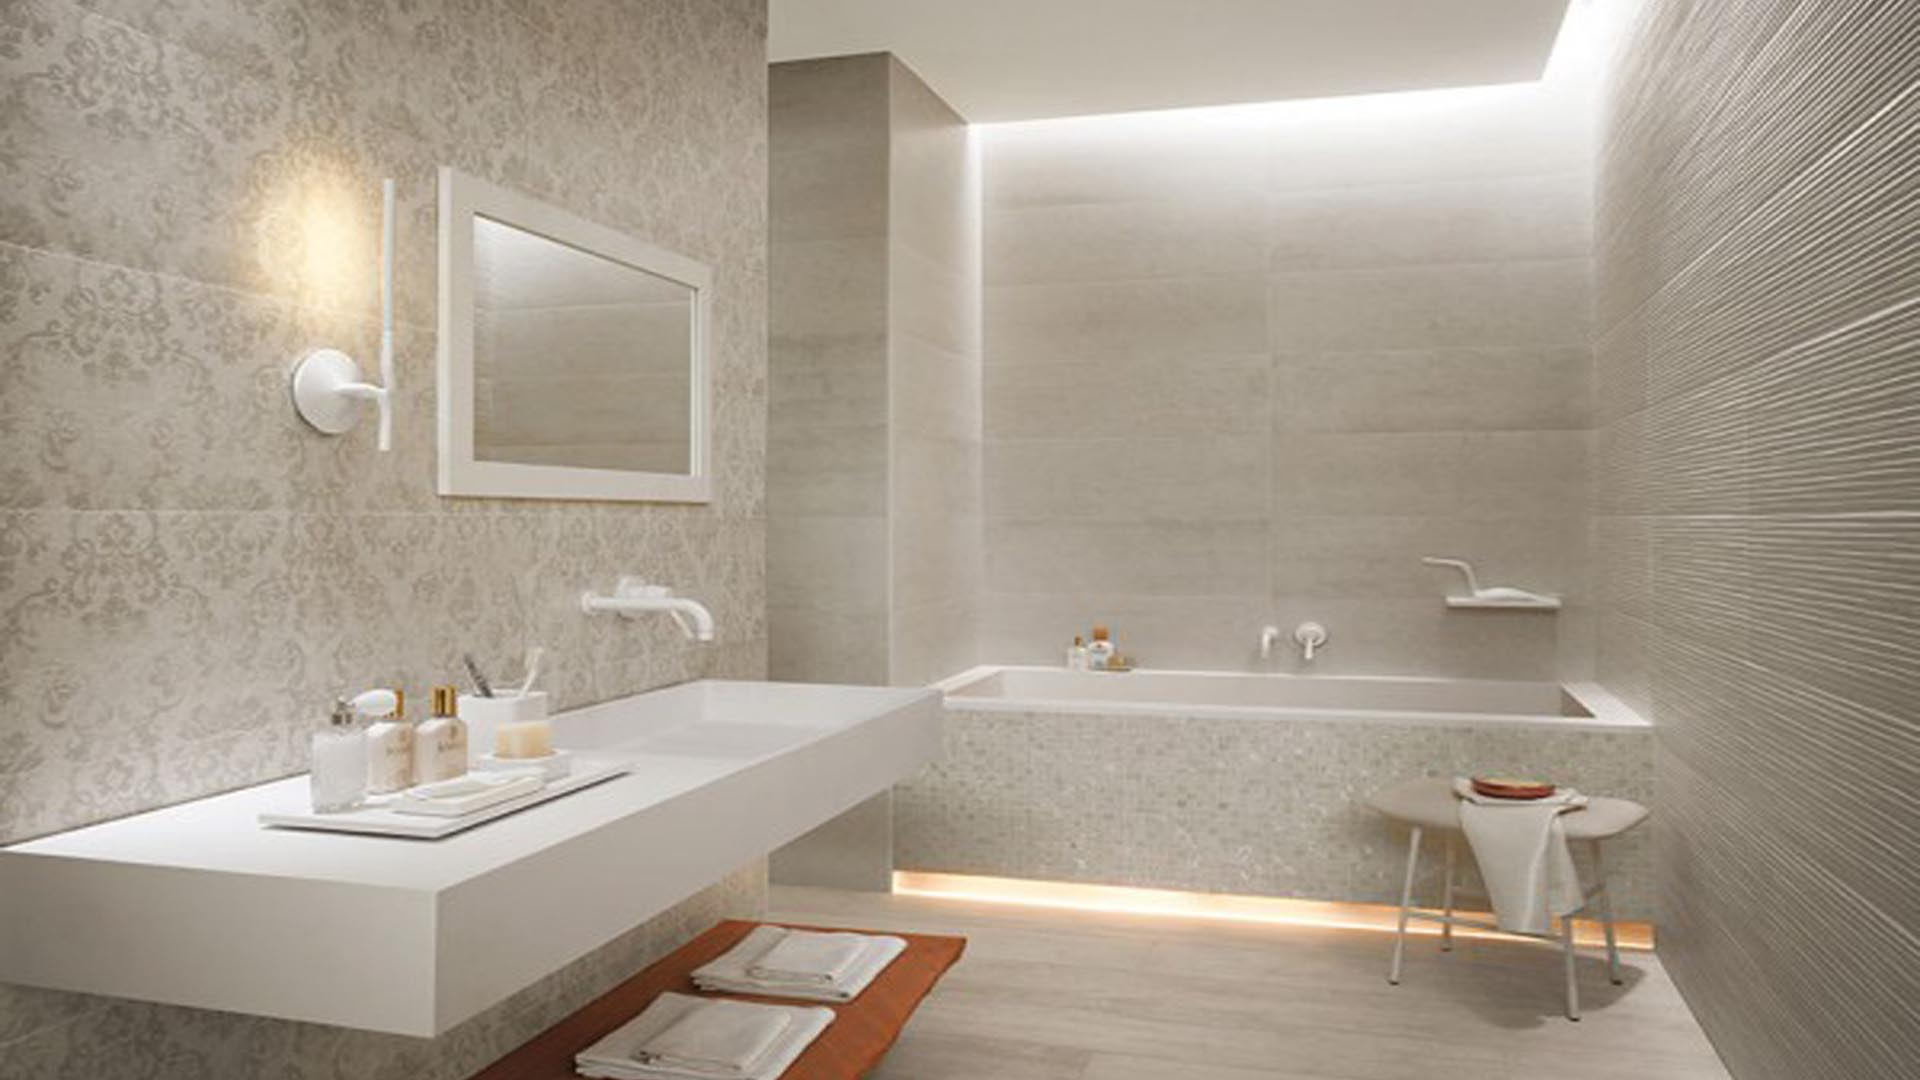 Ceramic tiles manufacturer in gujarat india by sexan ceramic id ceramic tiles 690890 6908901010 dailygadgetfo Choice Image